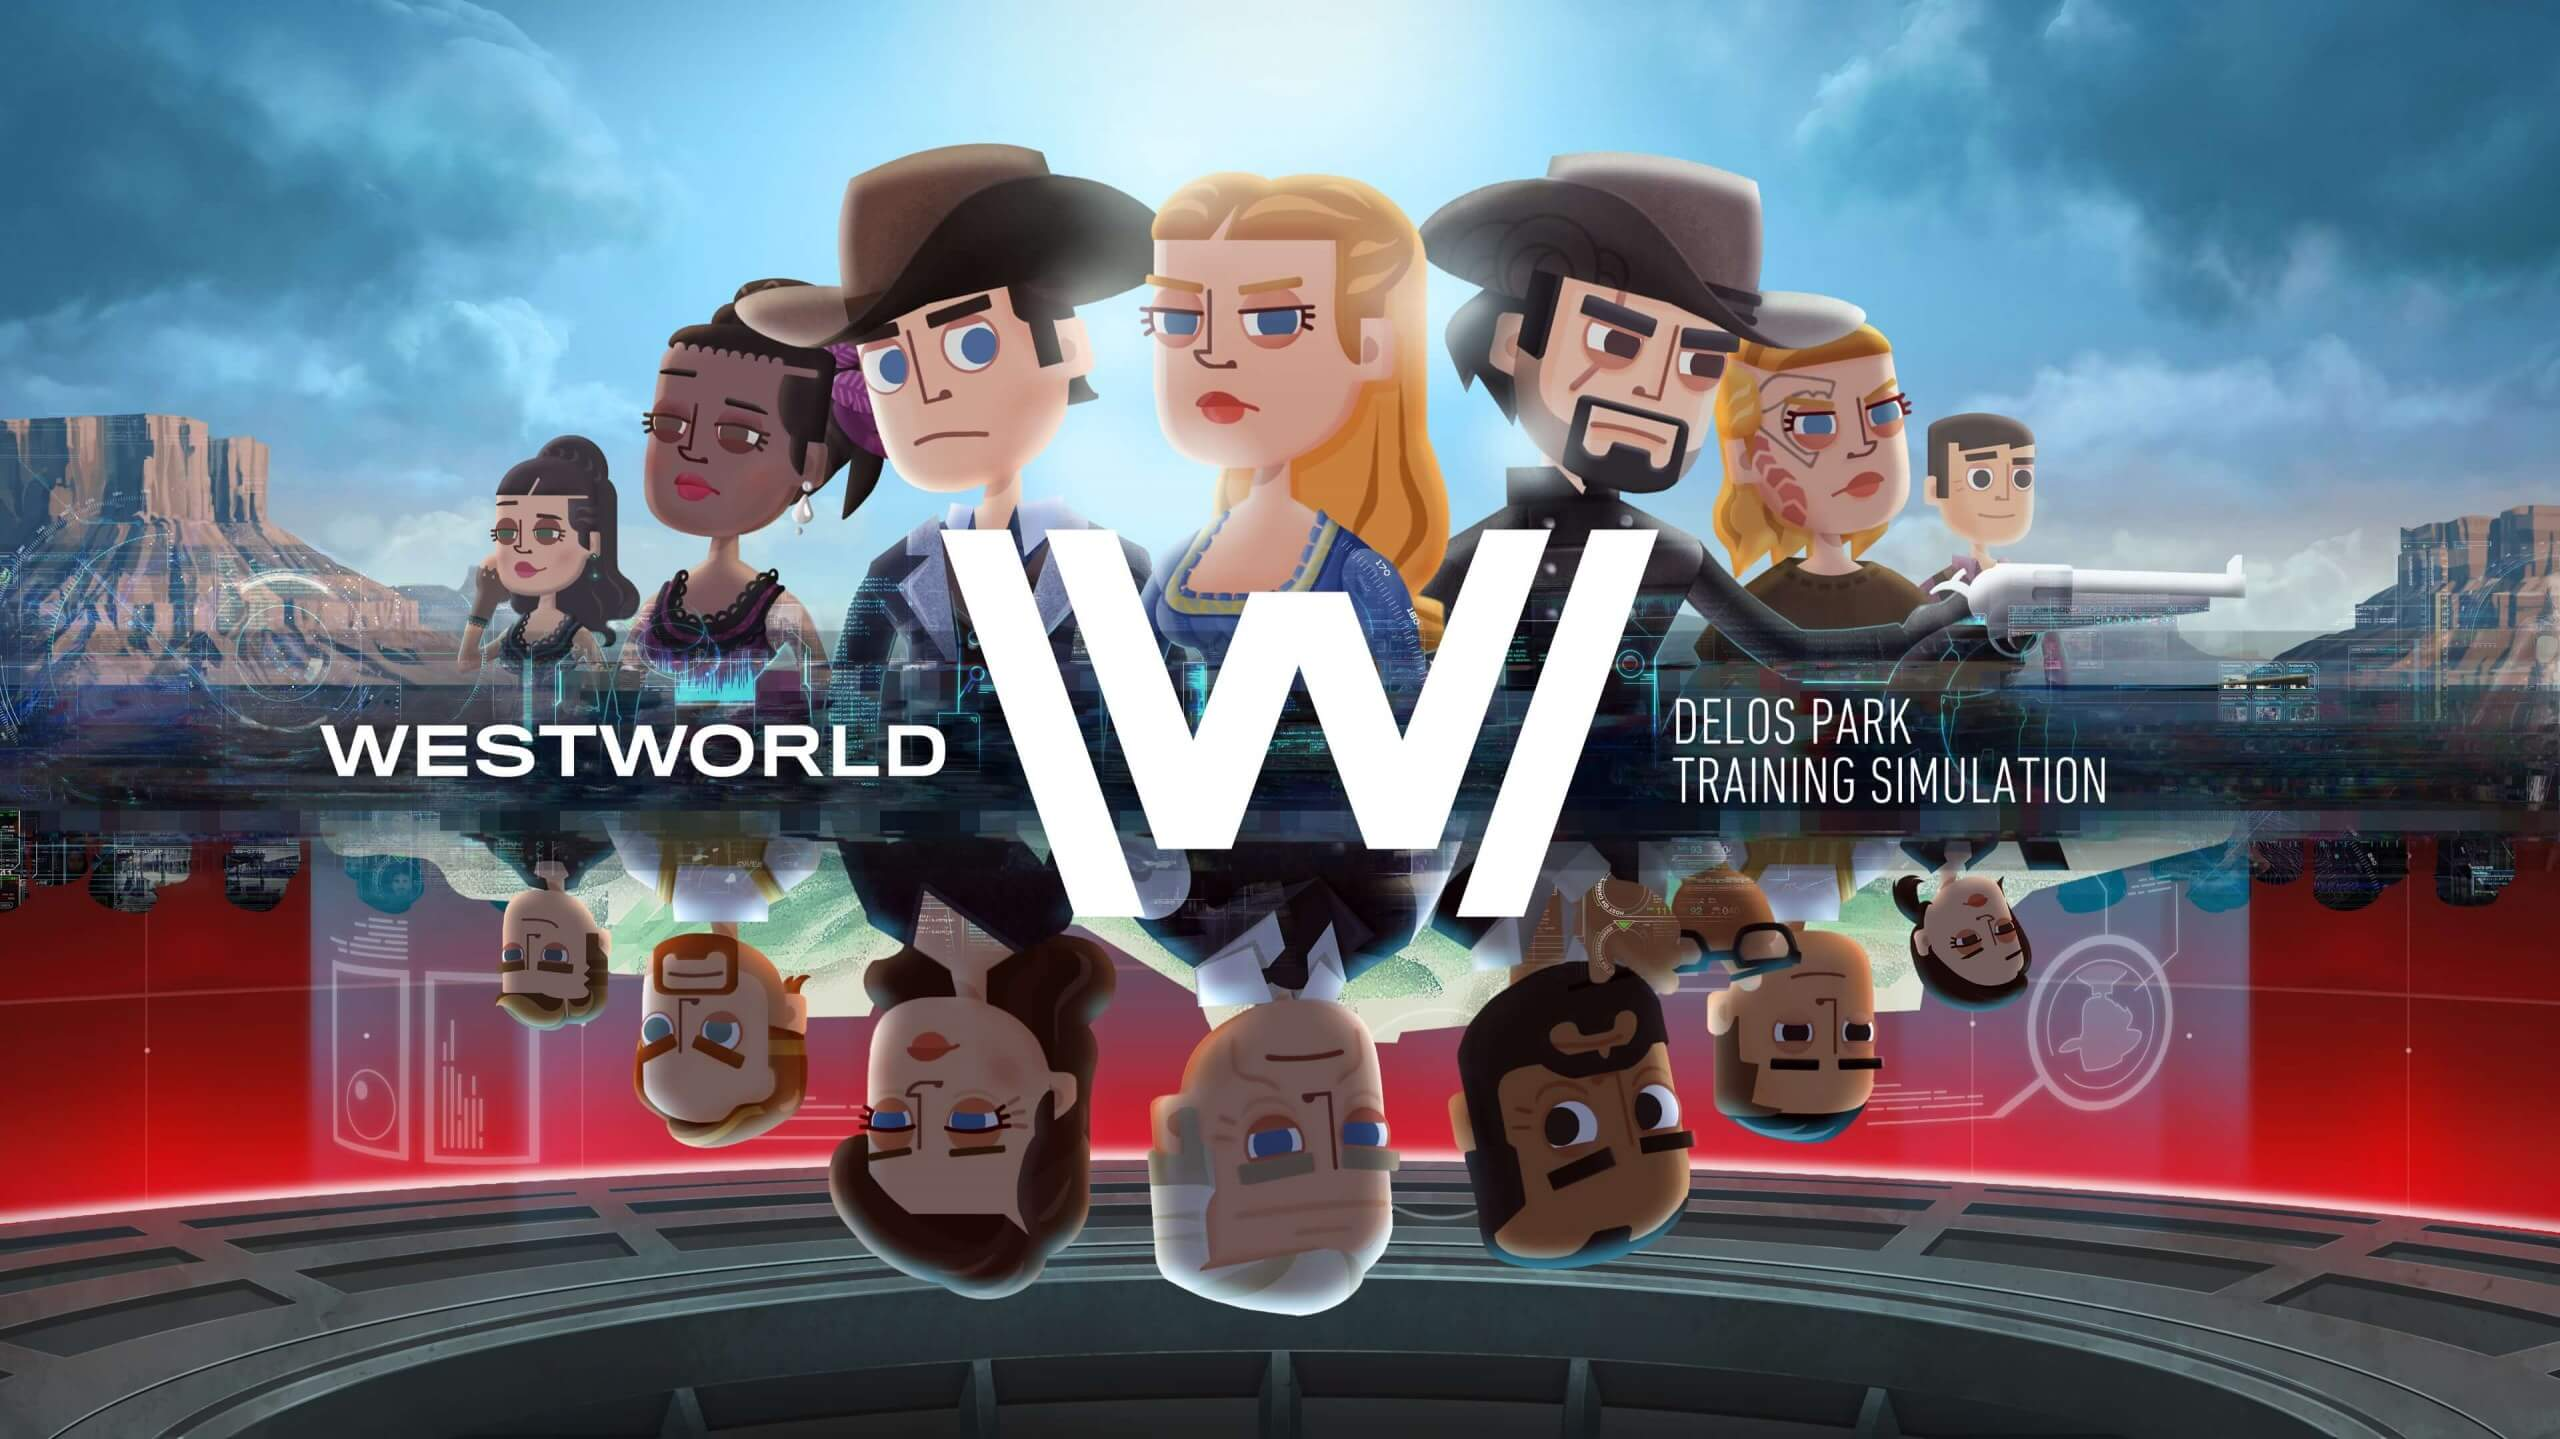 Westworld mobile game will shut down following Bethesda settlement